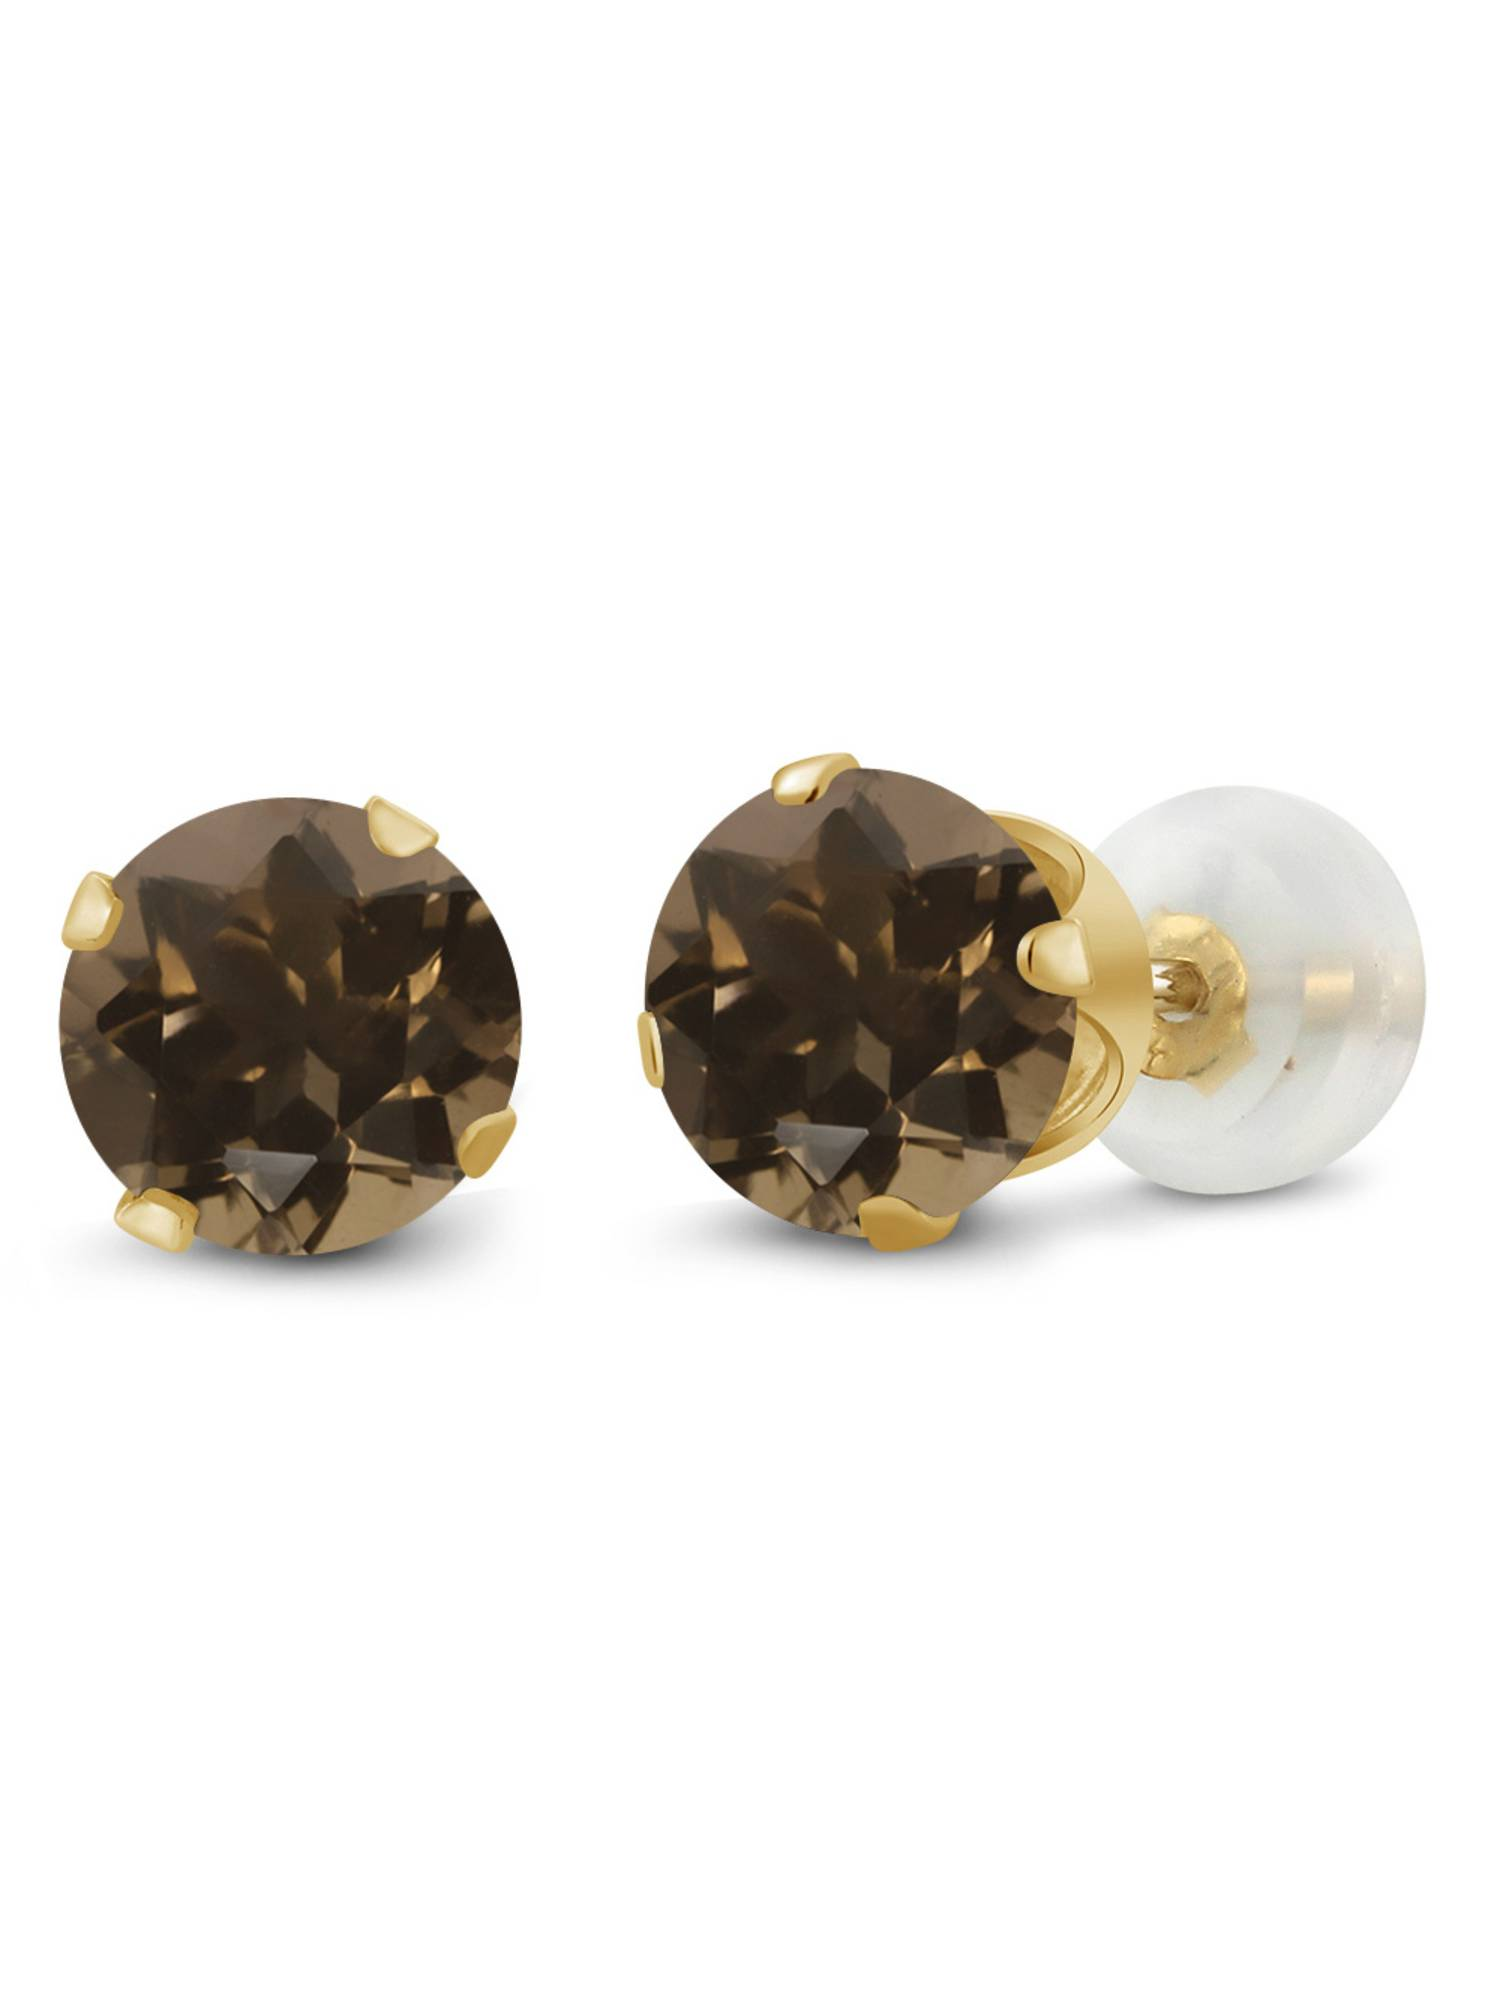 1.60 Ct Round 6mm Brown Smoky Quartz 10K Yellow Gold Stud Earrings